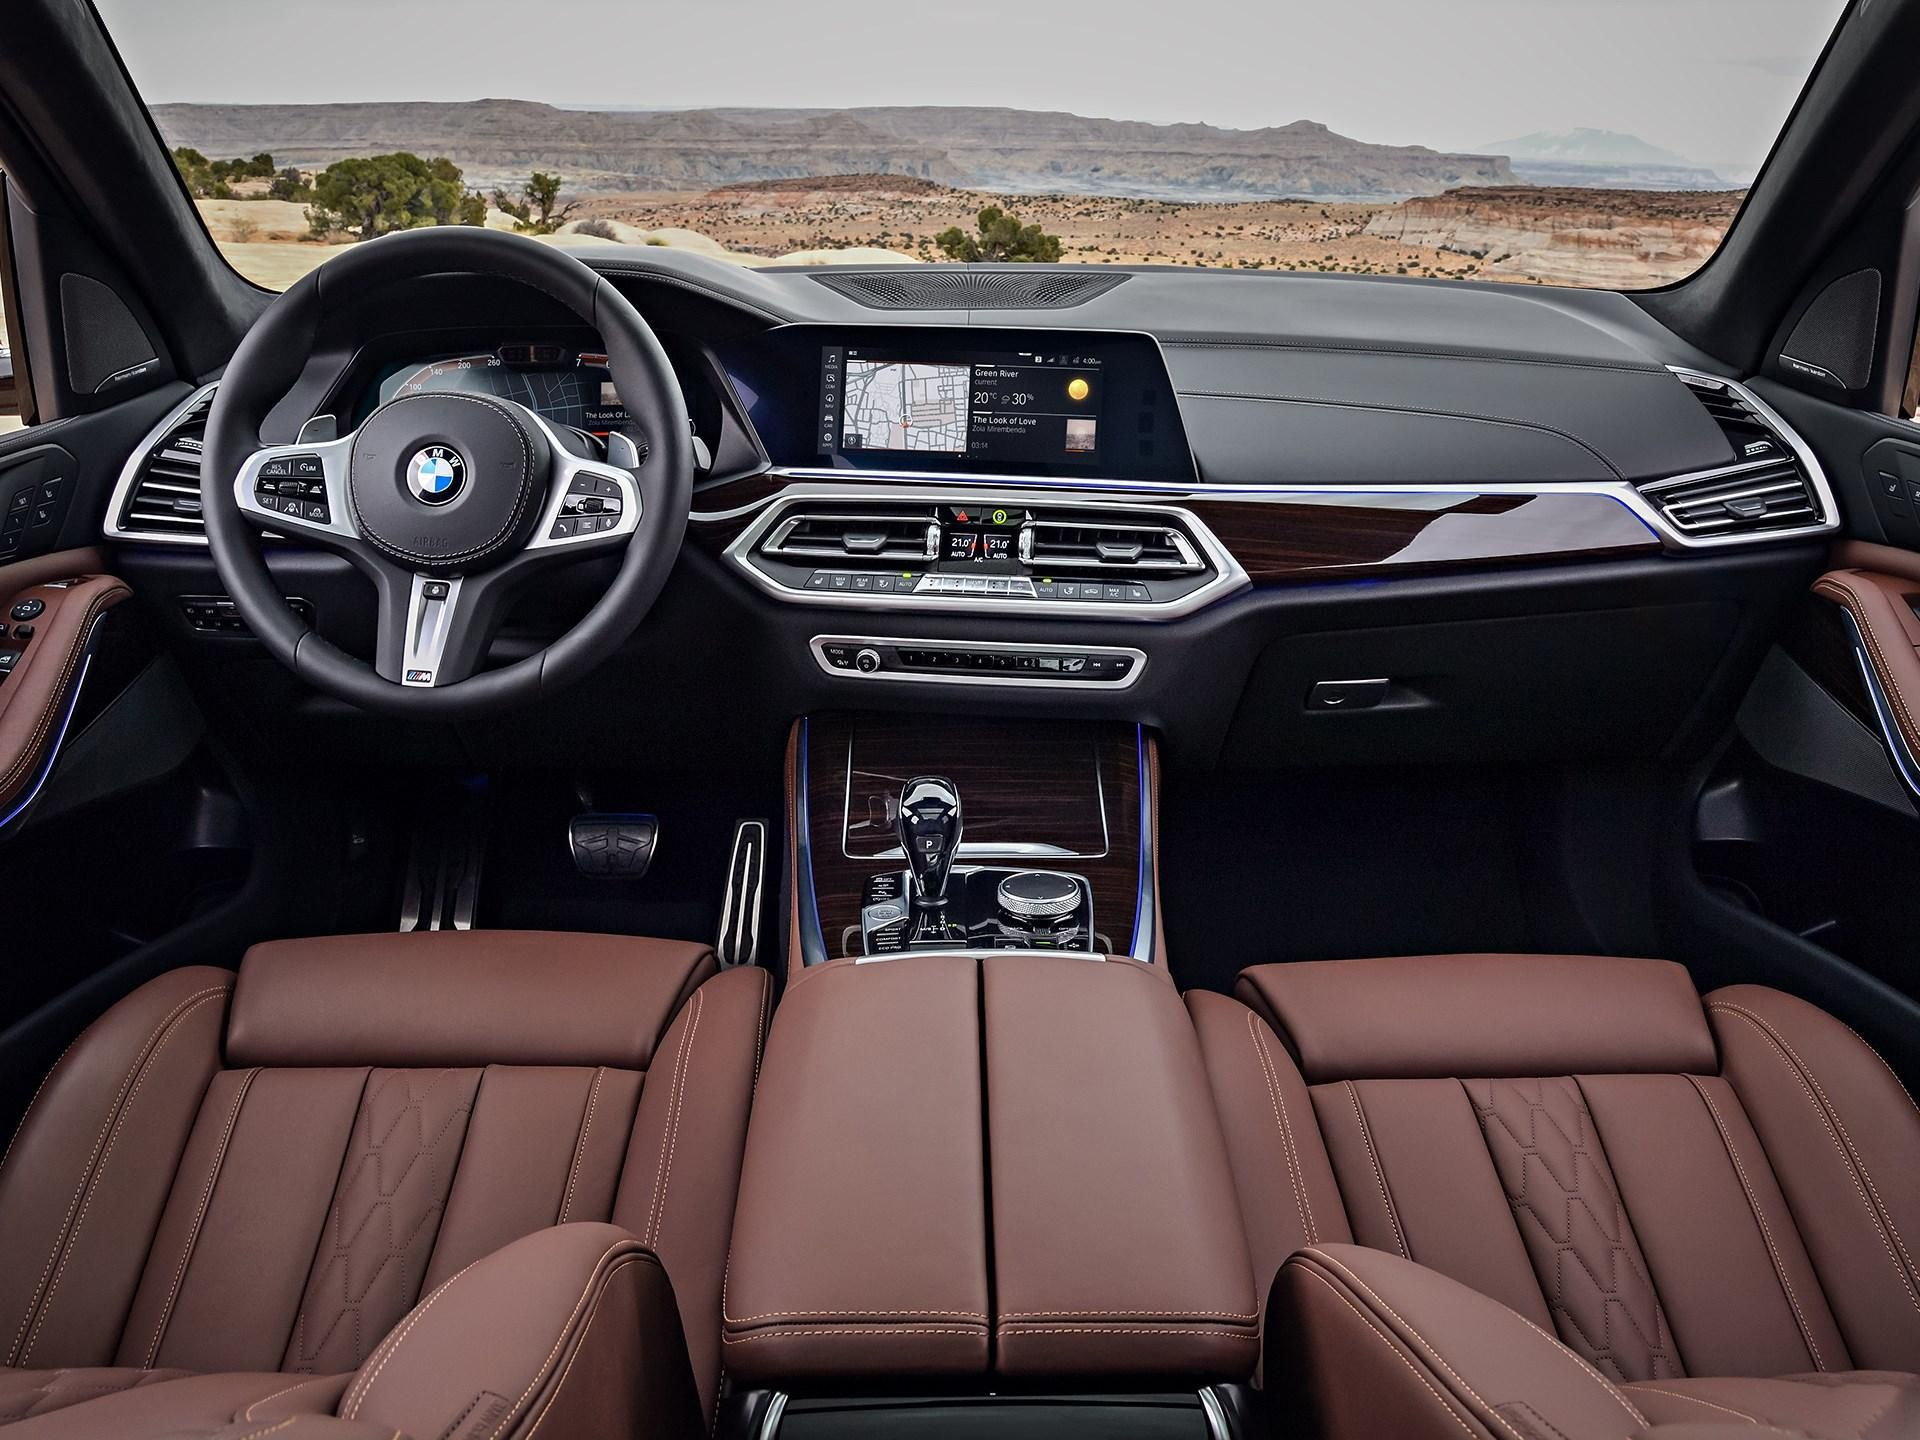 2019 Bmw X5 G05 This Is It First Official Photos With Images